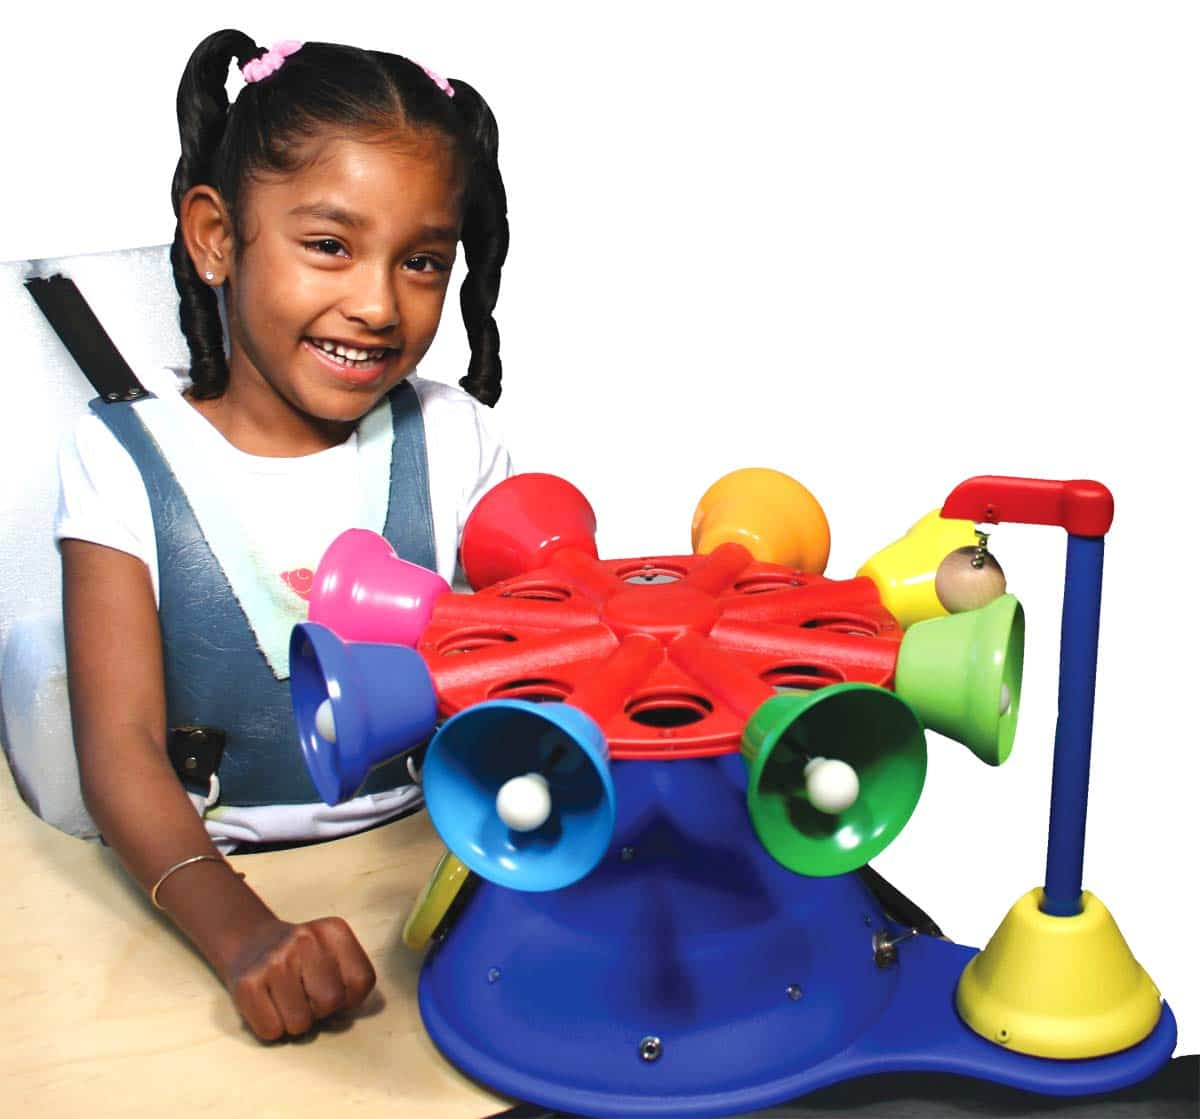 Big W Toys Catalogue Products And Toys For Special Needs Child Enabling Devices